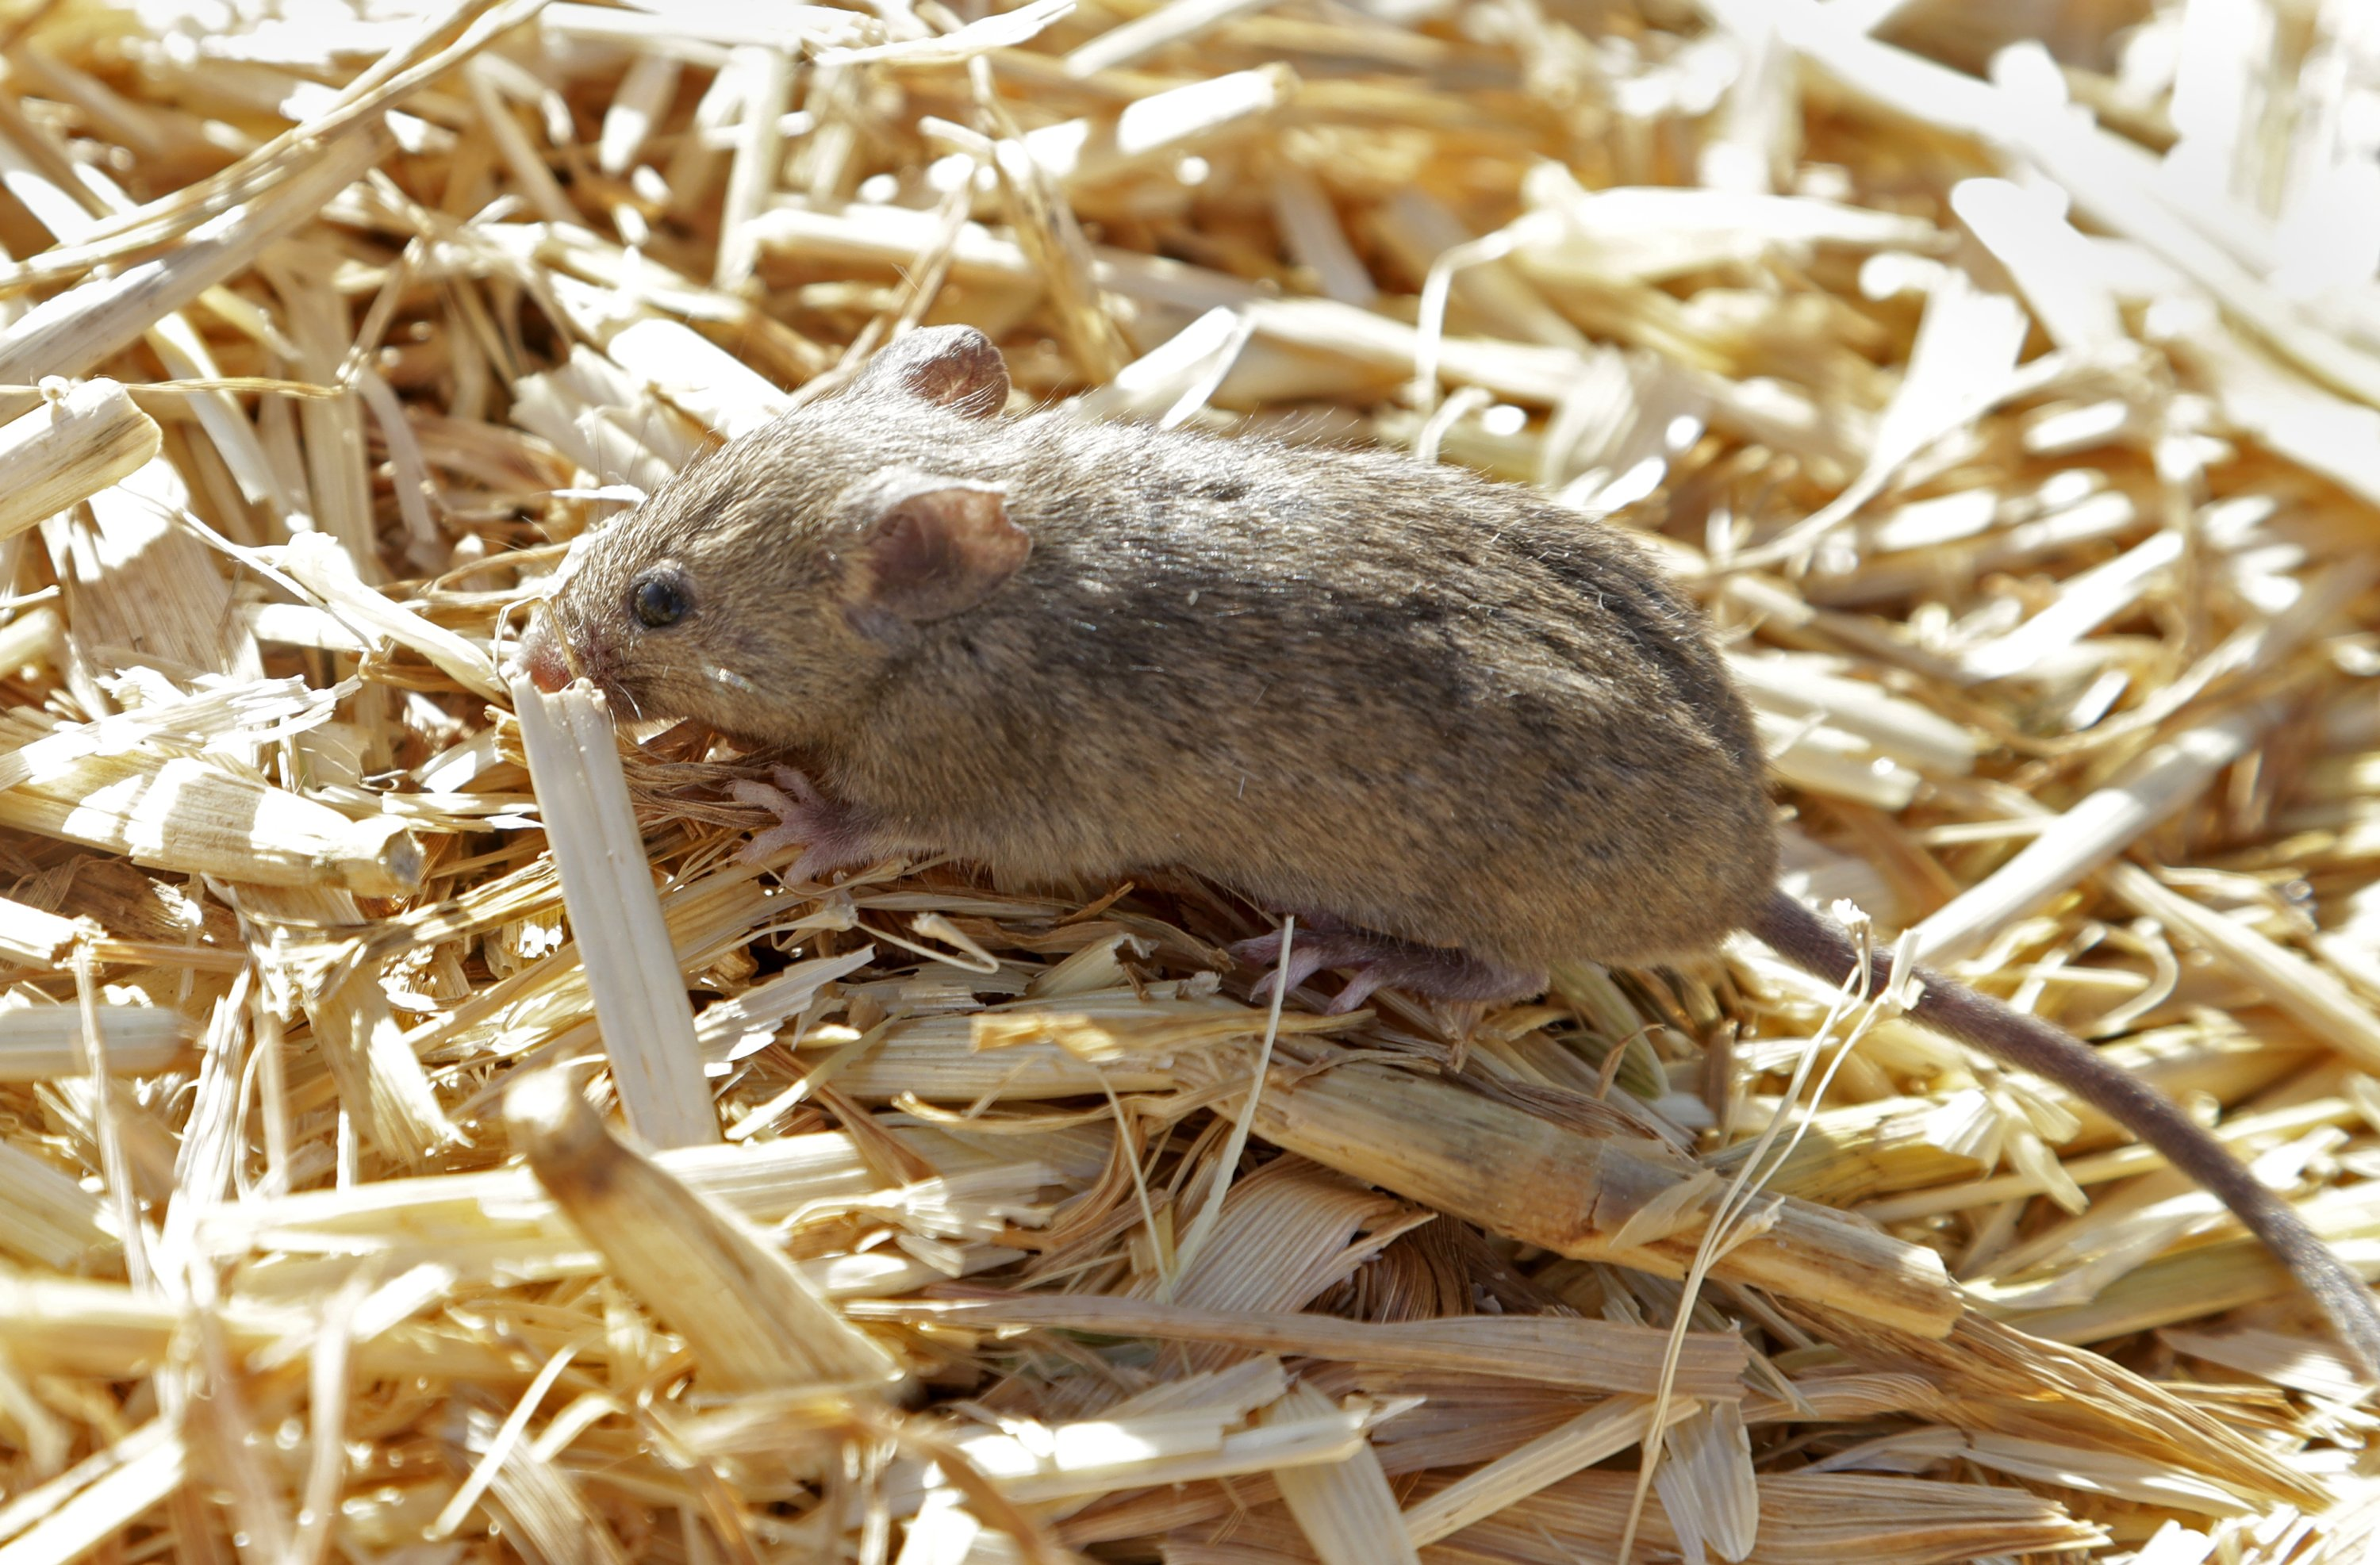 A mouse sits on top of hay stored by Bruce Barnes at his family's farm near Bogan Gate, Australia, May 20, 2021. (AP Photo)